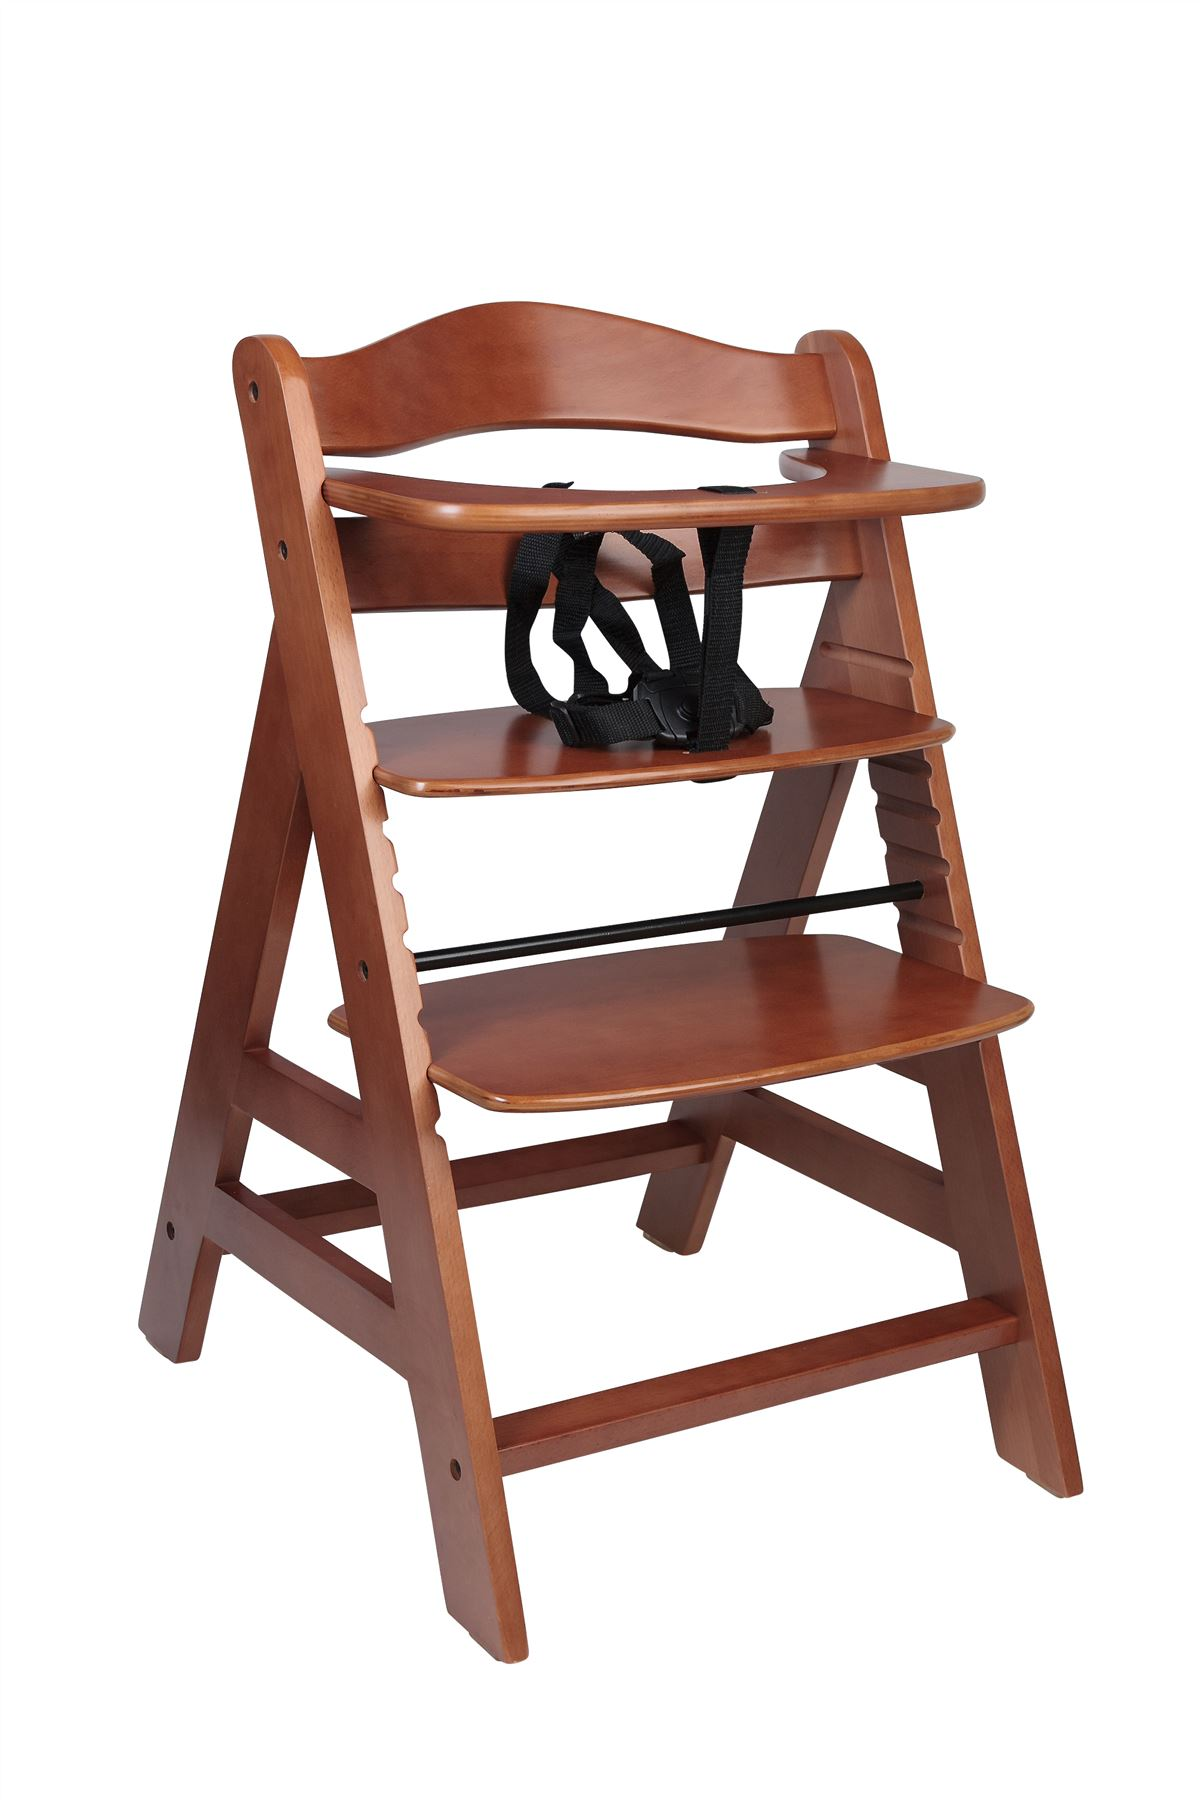 wooden high chair uk portable travel safetots a frame multi height premium